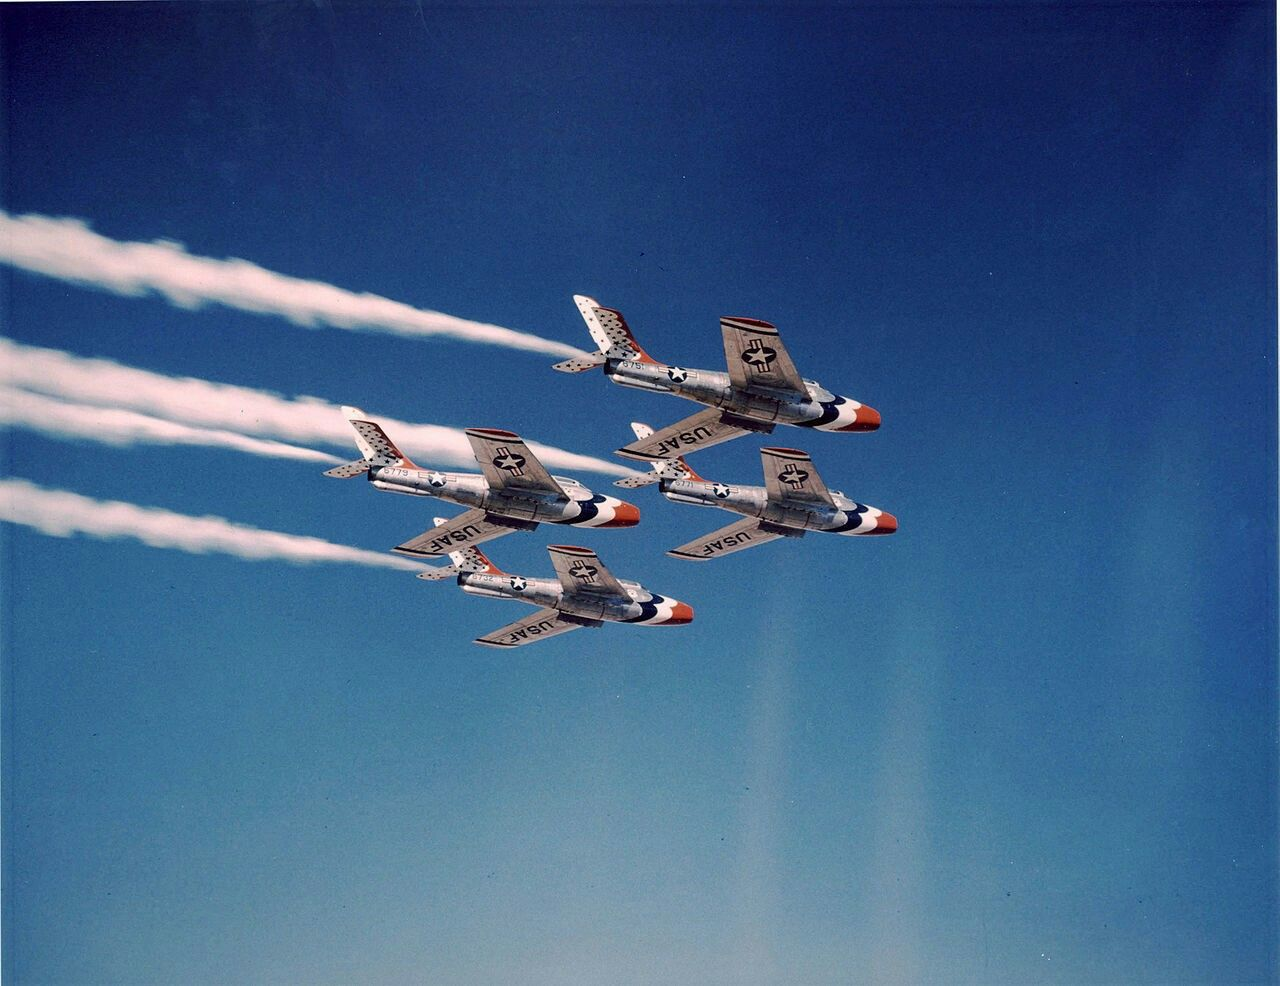 Pin by Kuangyi Fan on AIR SHOW Usaf thunderbirds, Usaf